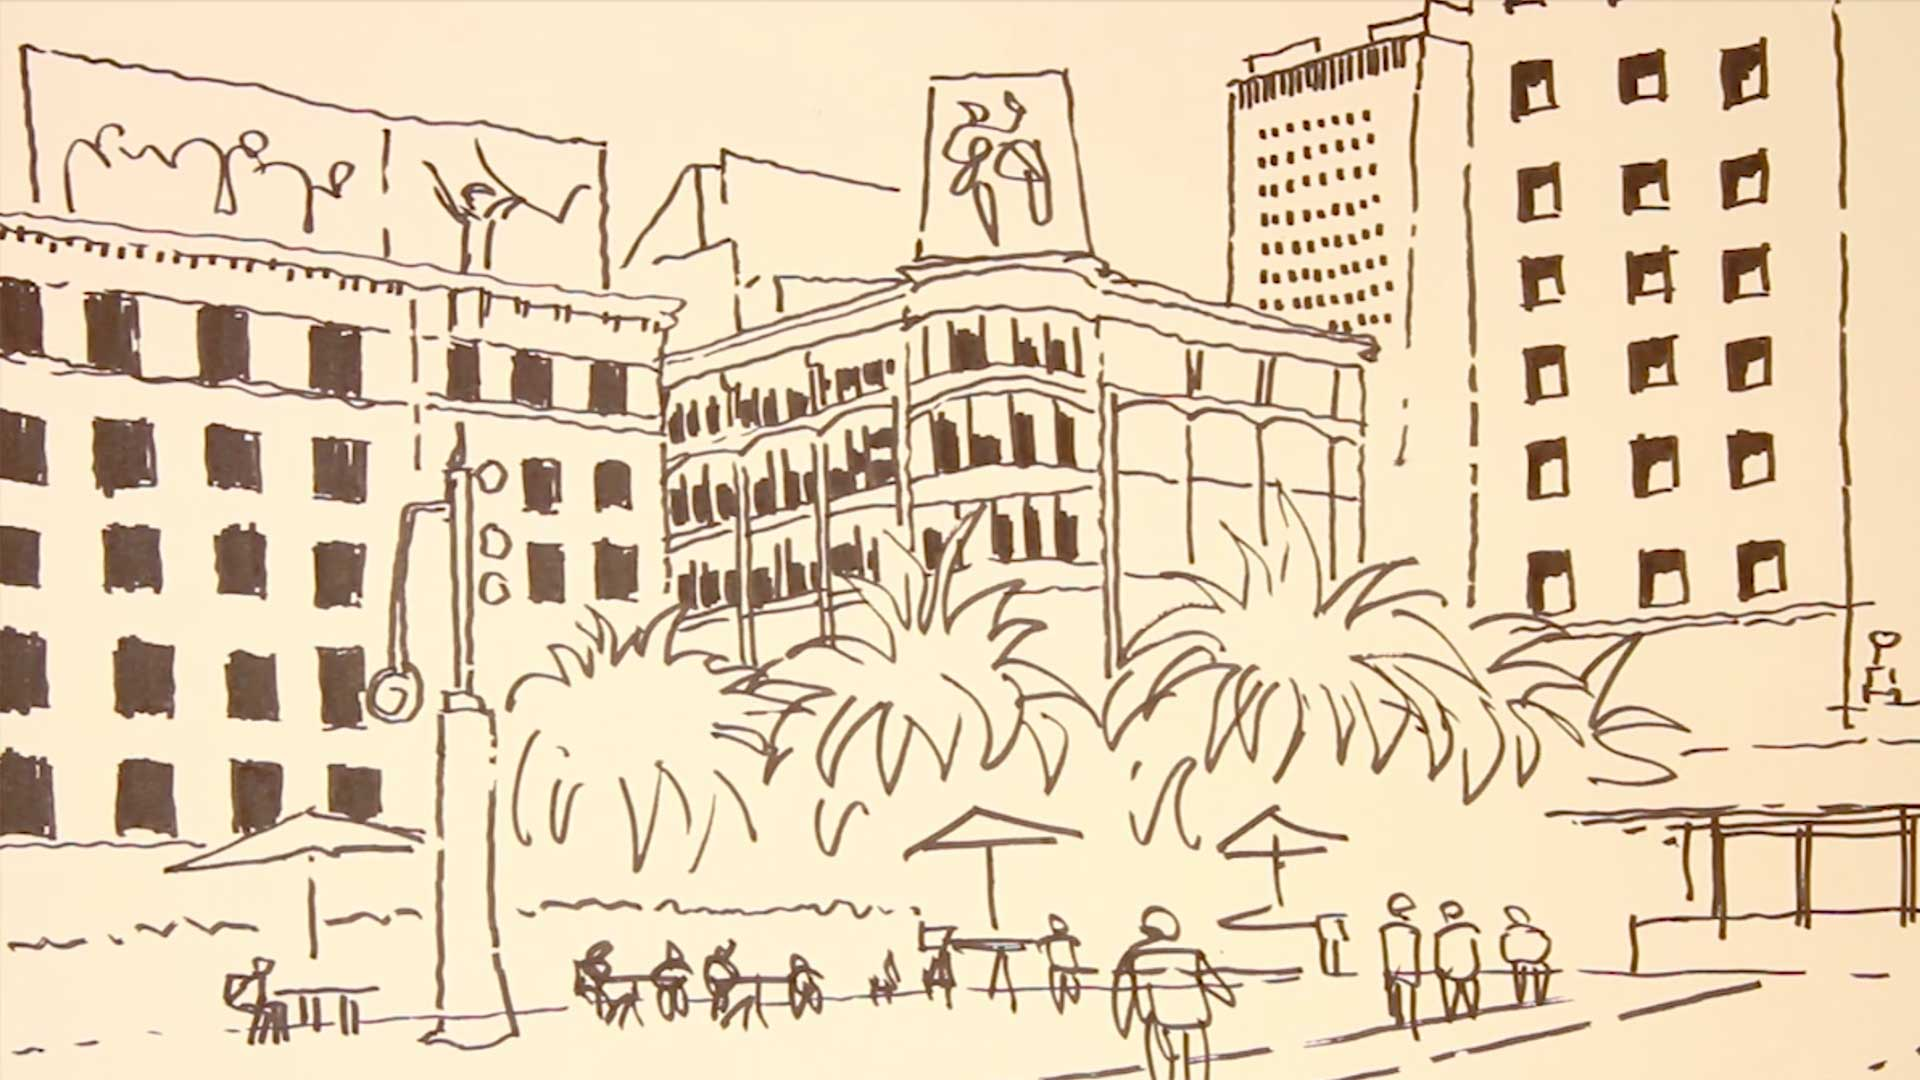 ink drawing of buildings and people in foreground